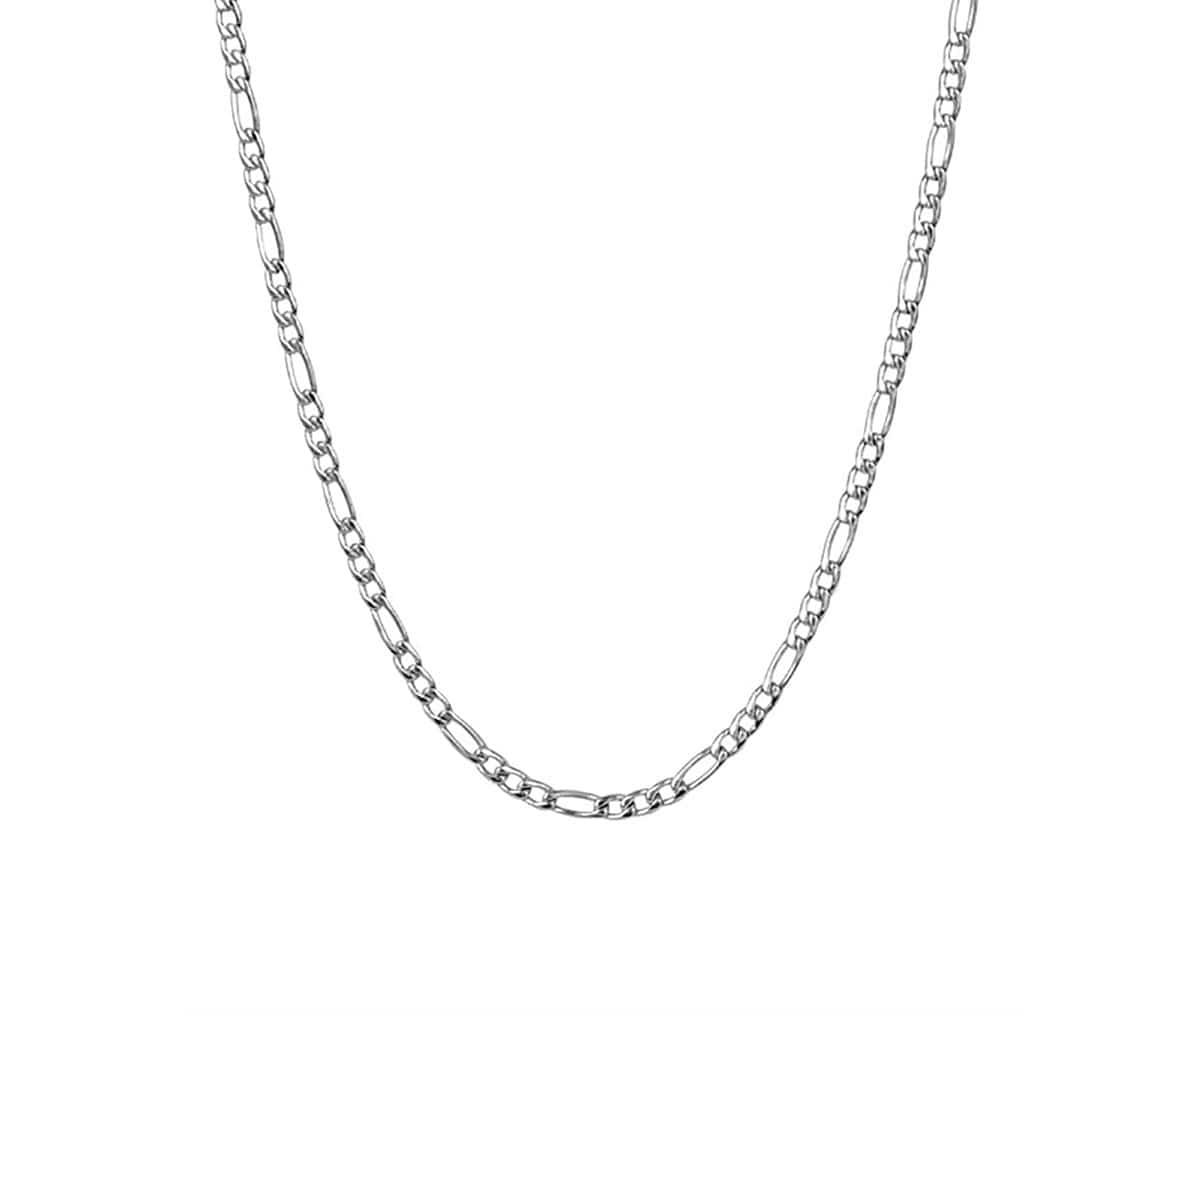 Silver Stainless Steel 3mm Figaro Polished Chain Chains